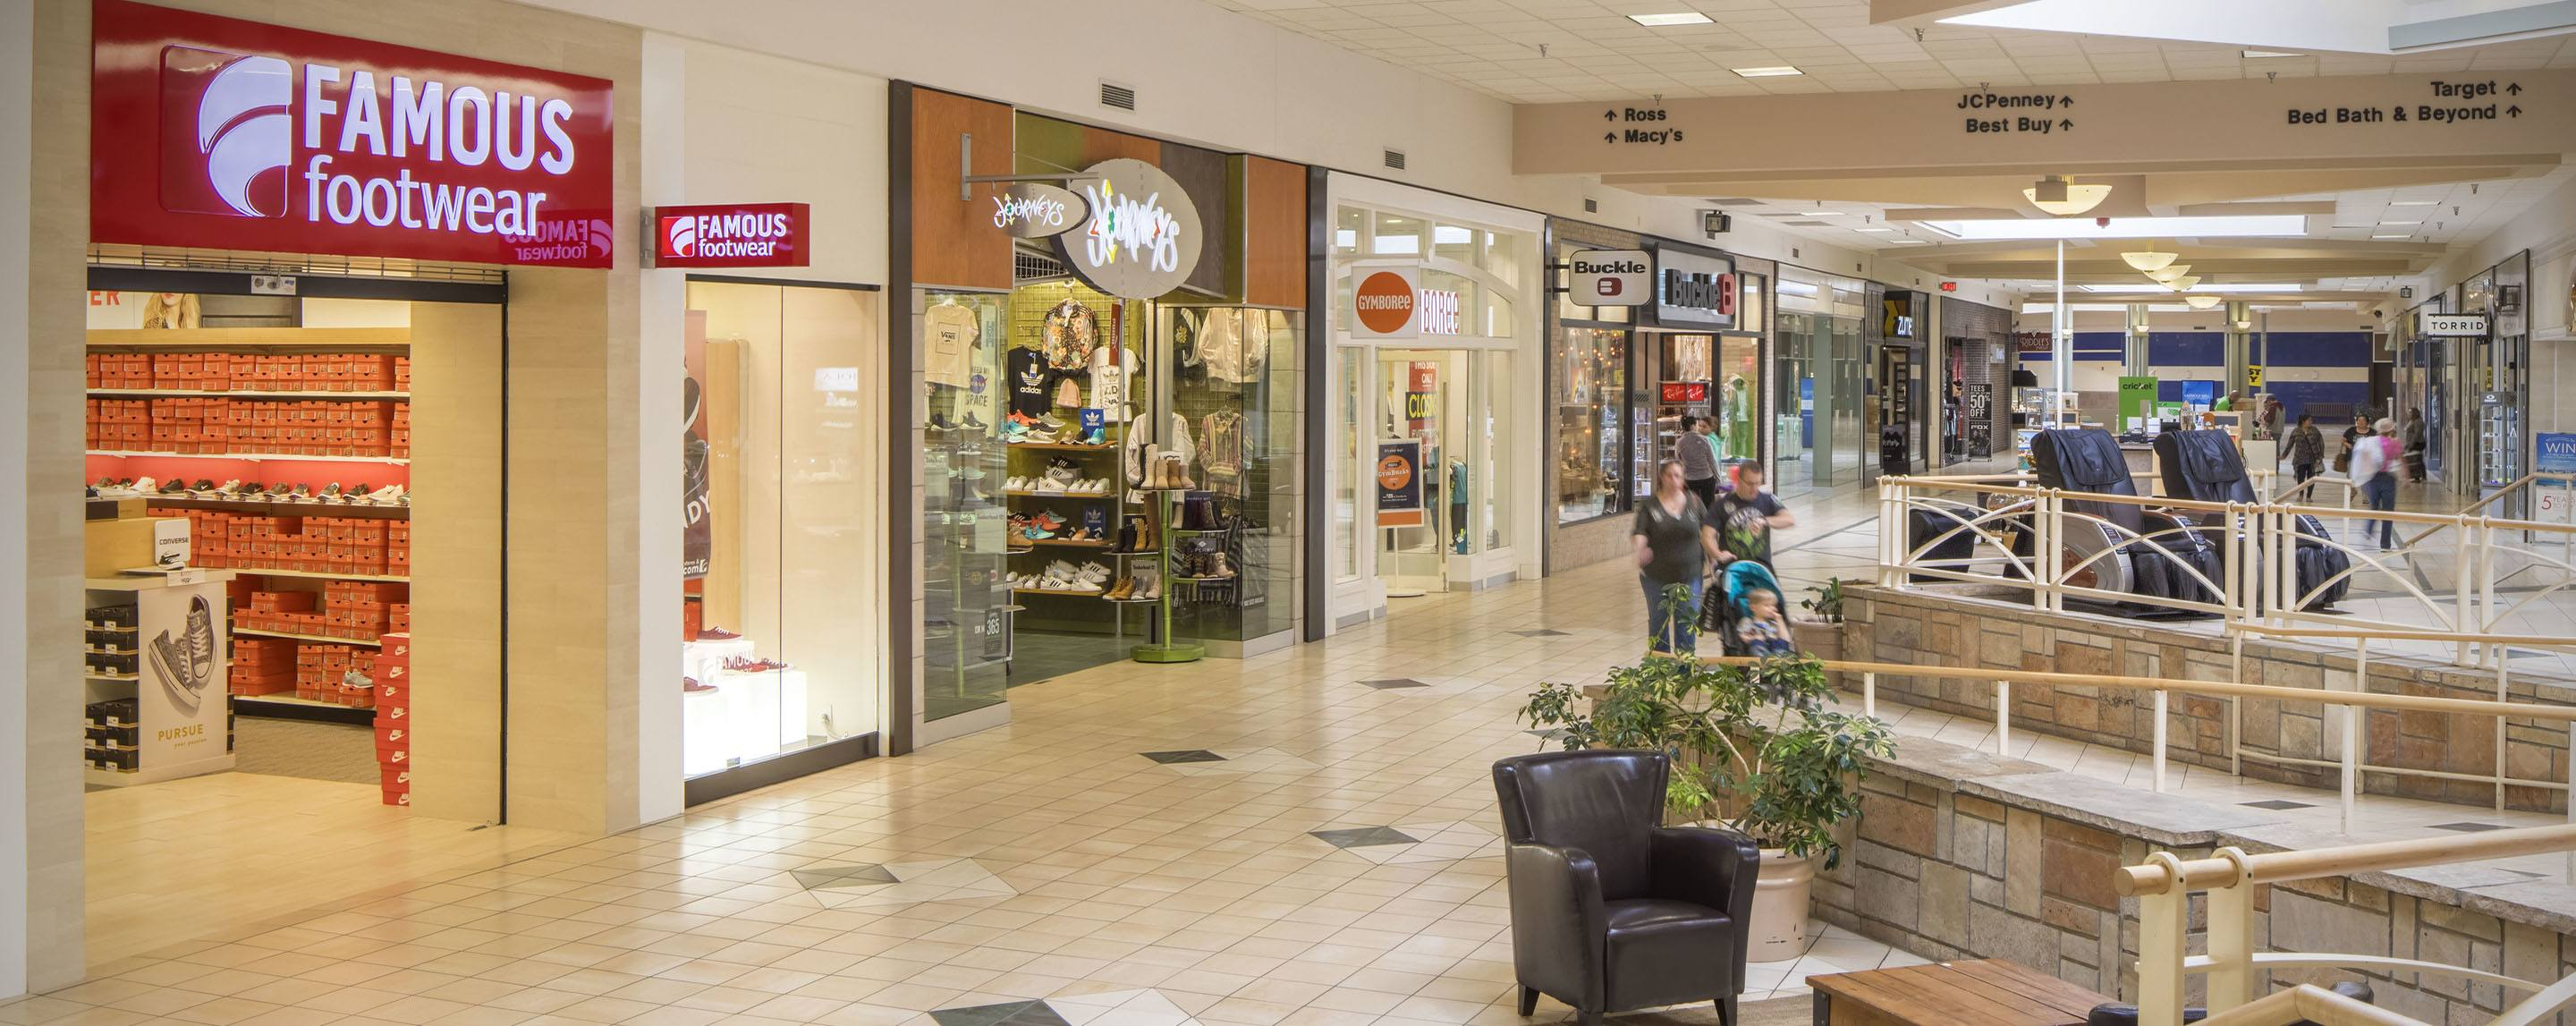 An indoor shot of a line of mall storefronts, including Famous Footwear and Journeys